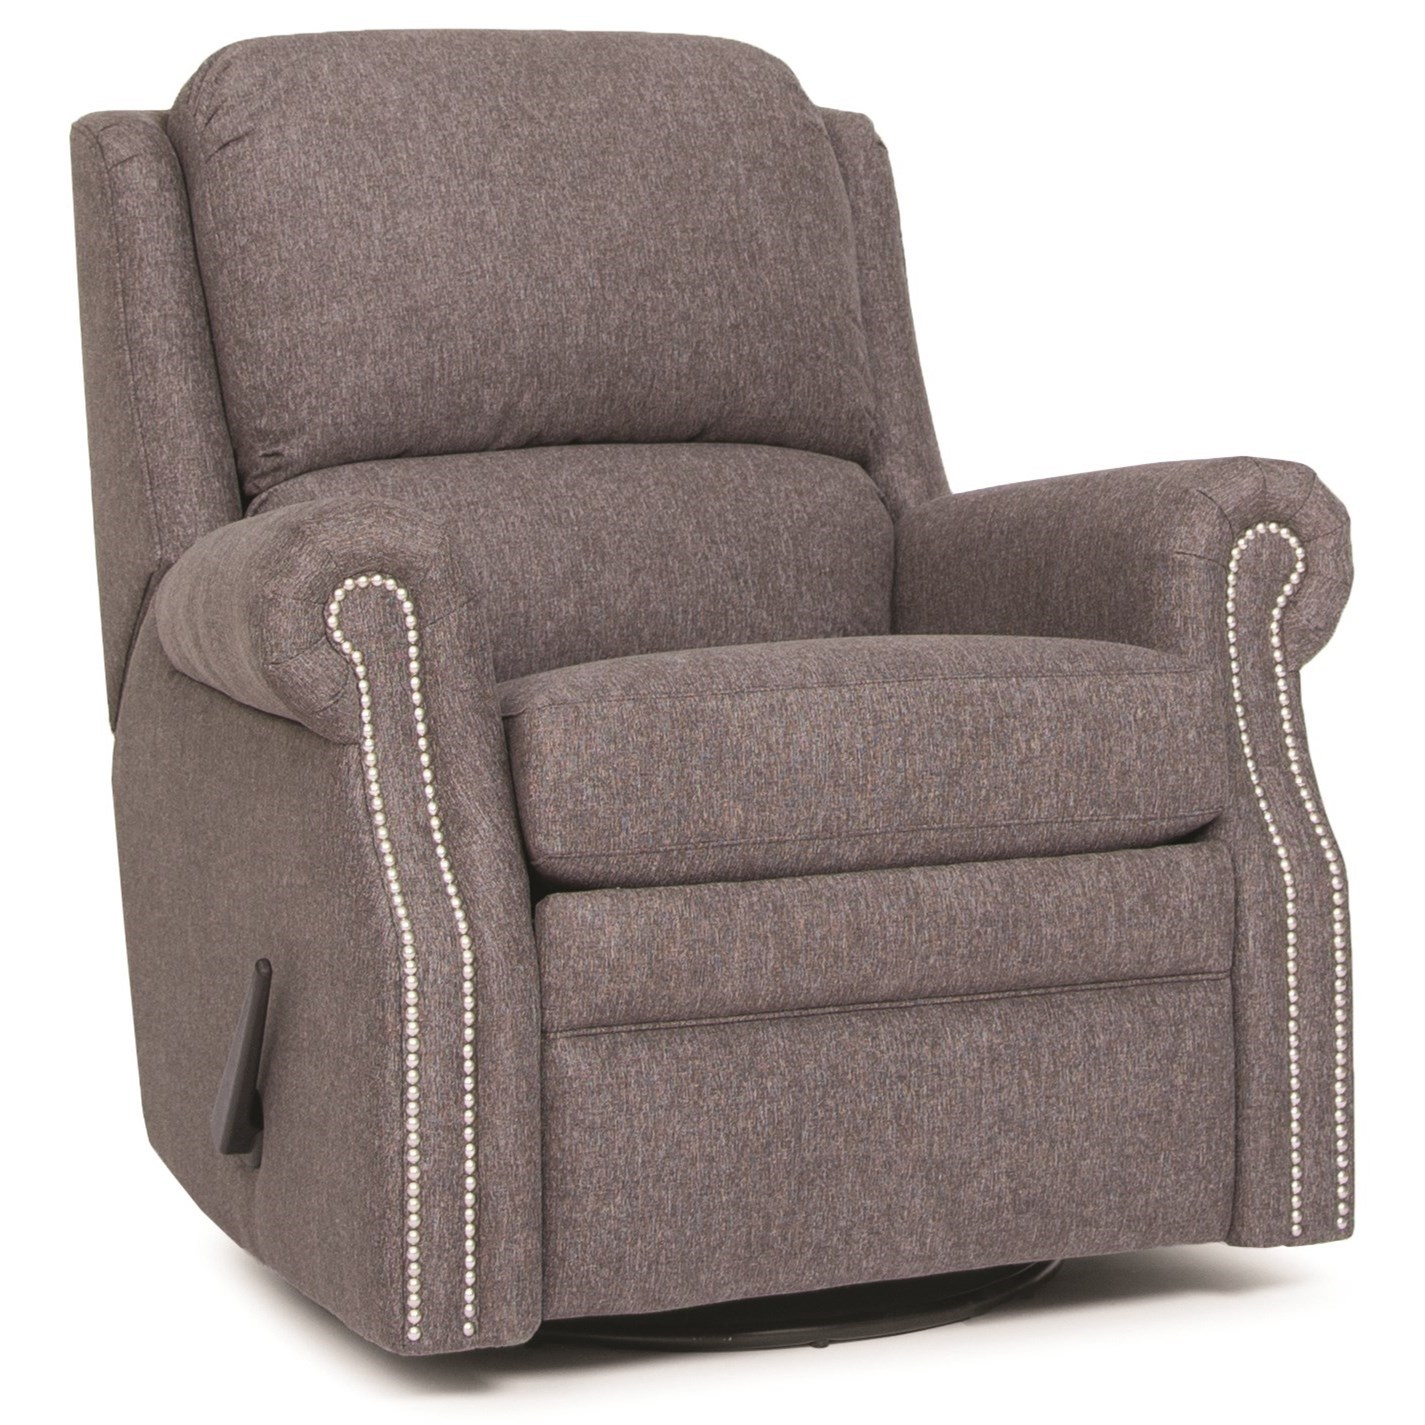 731 Motorized Reclining Chair by Smith Brothers at Turk Furniture